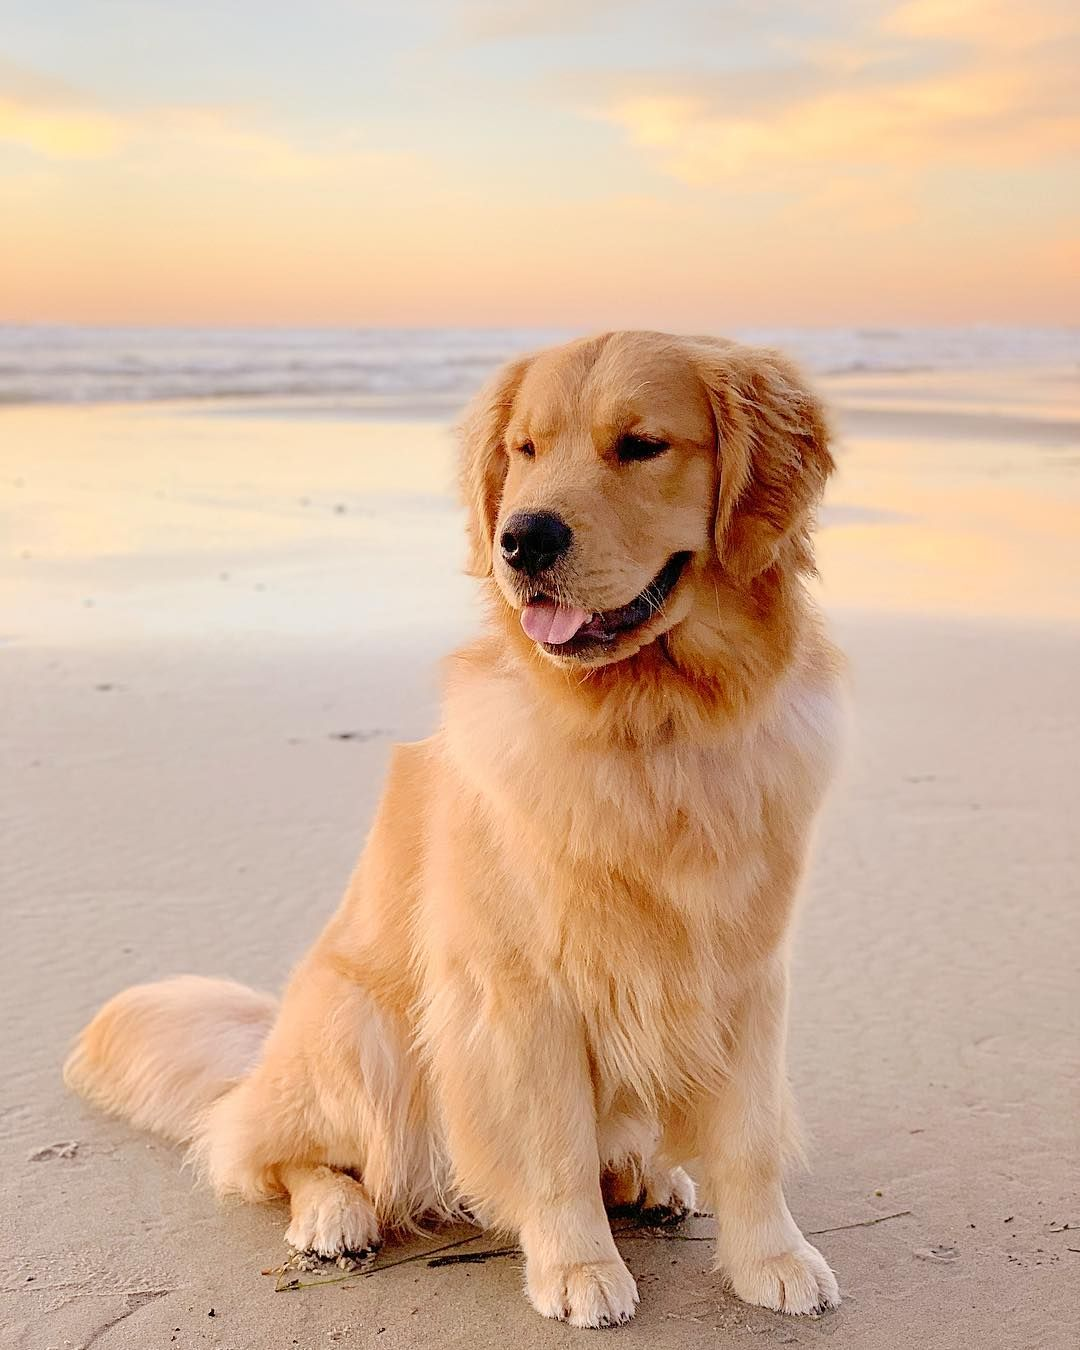 Kyler The Golden On Instagram Dreaming Of Sunset Walks On The